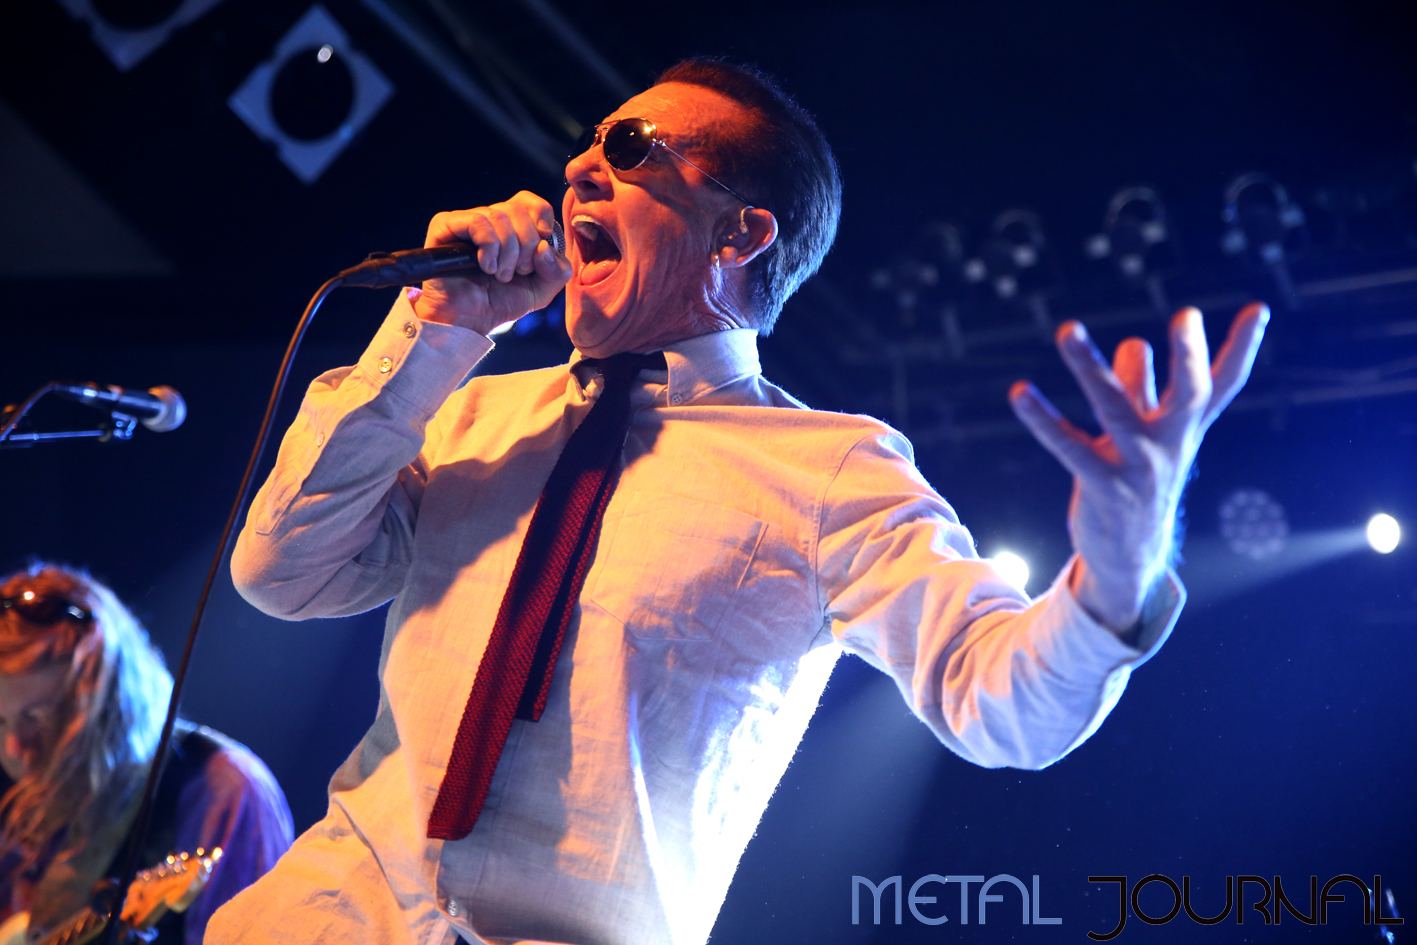 graham bonnet band - metal journal 2018 pic 1